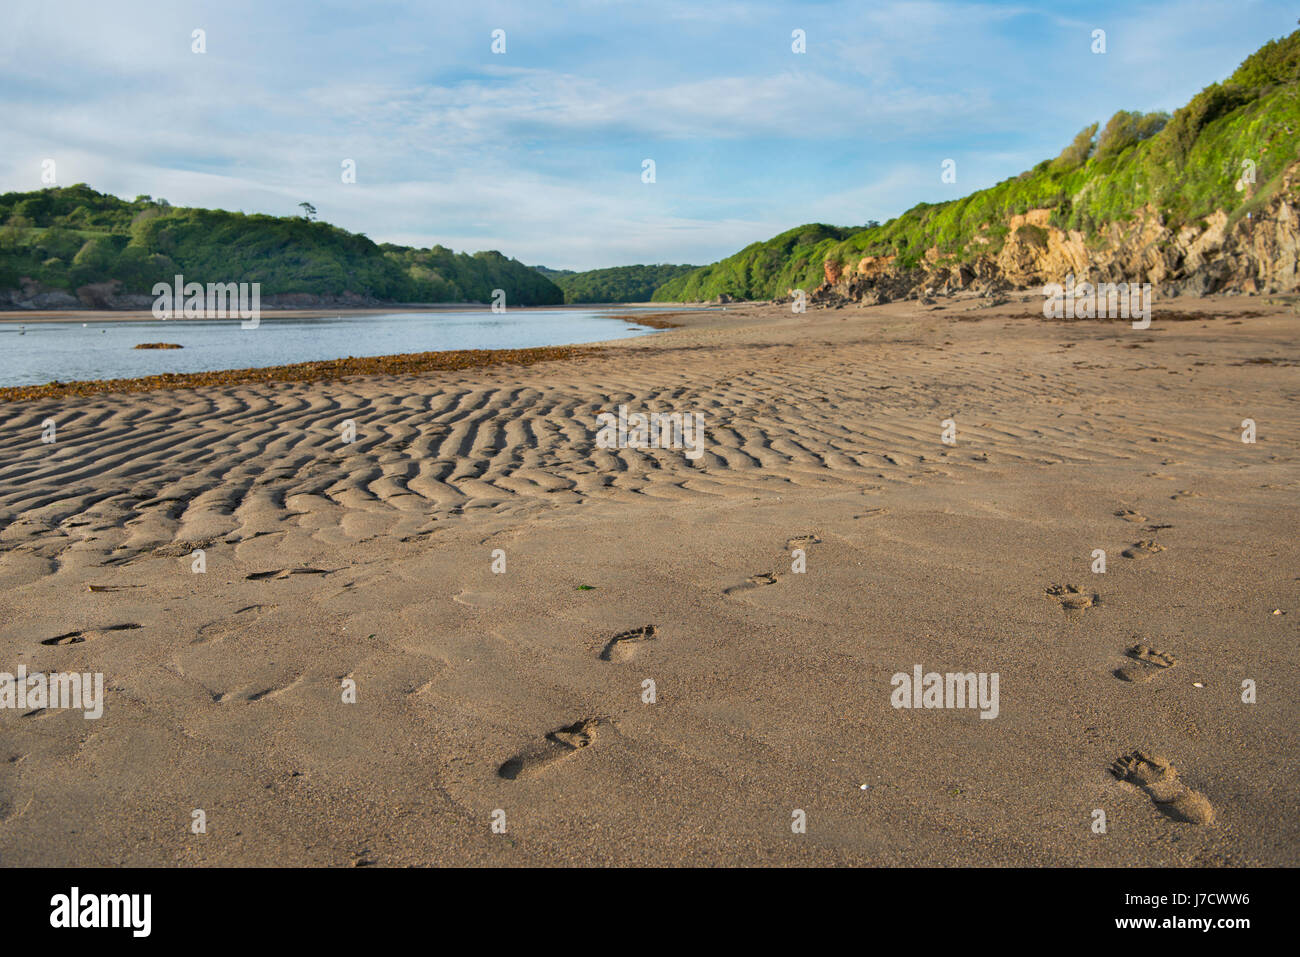 Wonwell Beach at the mouth of the River Erme in South Devon. - Stock Image